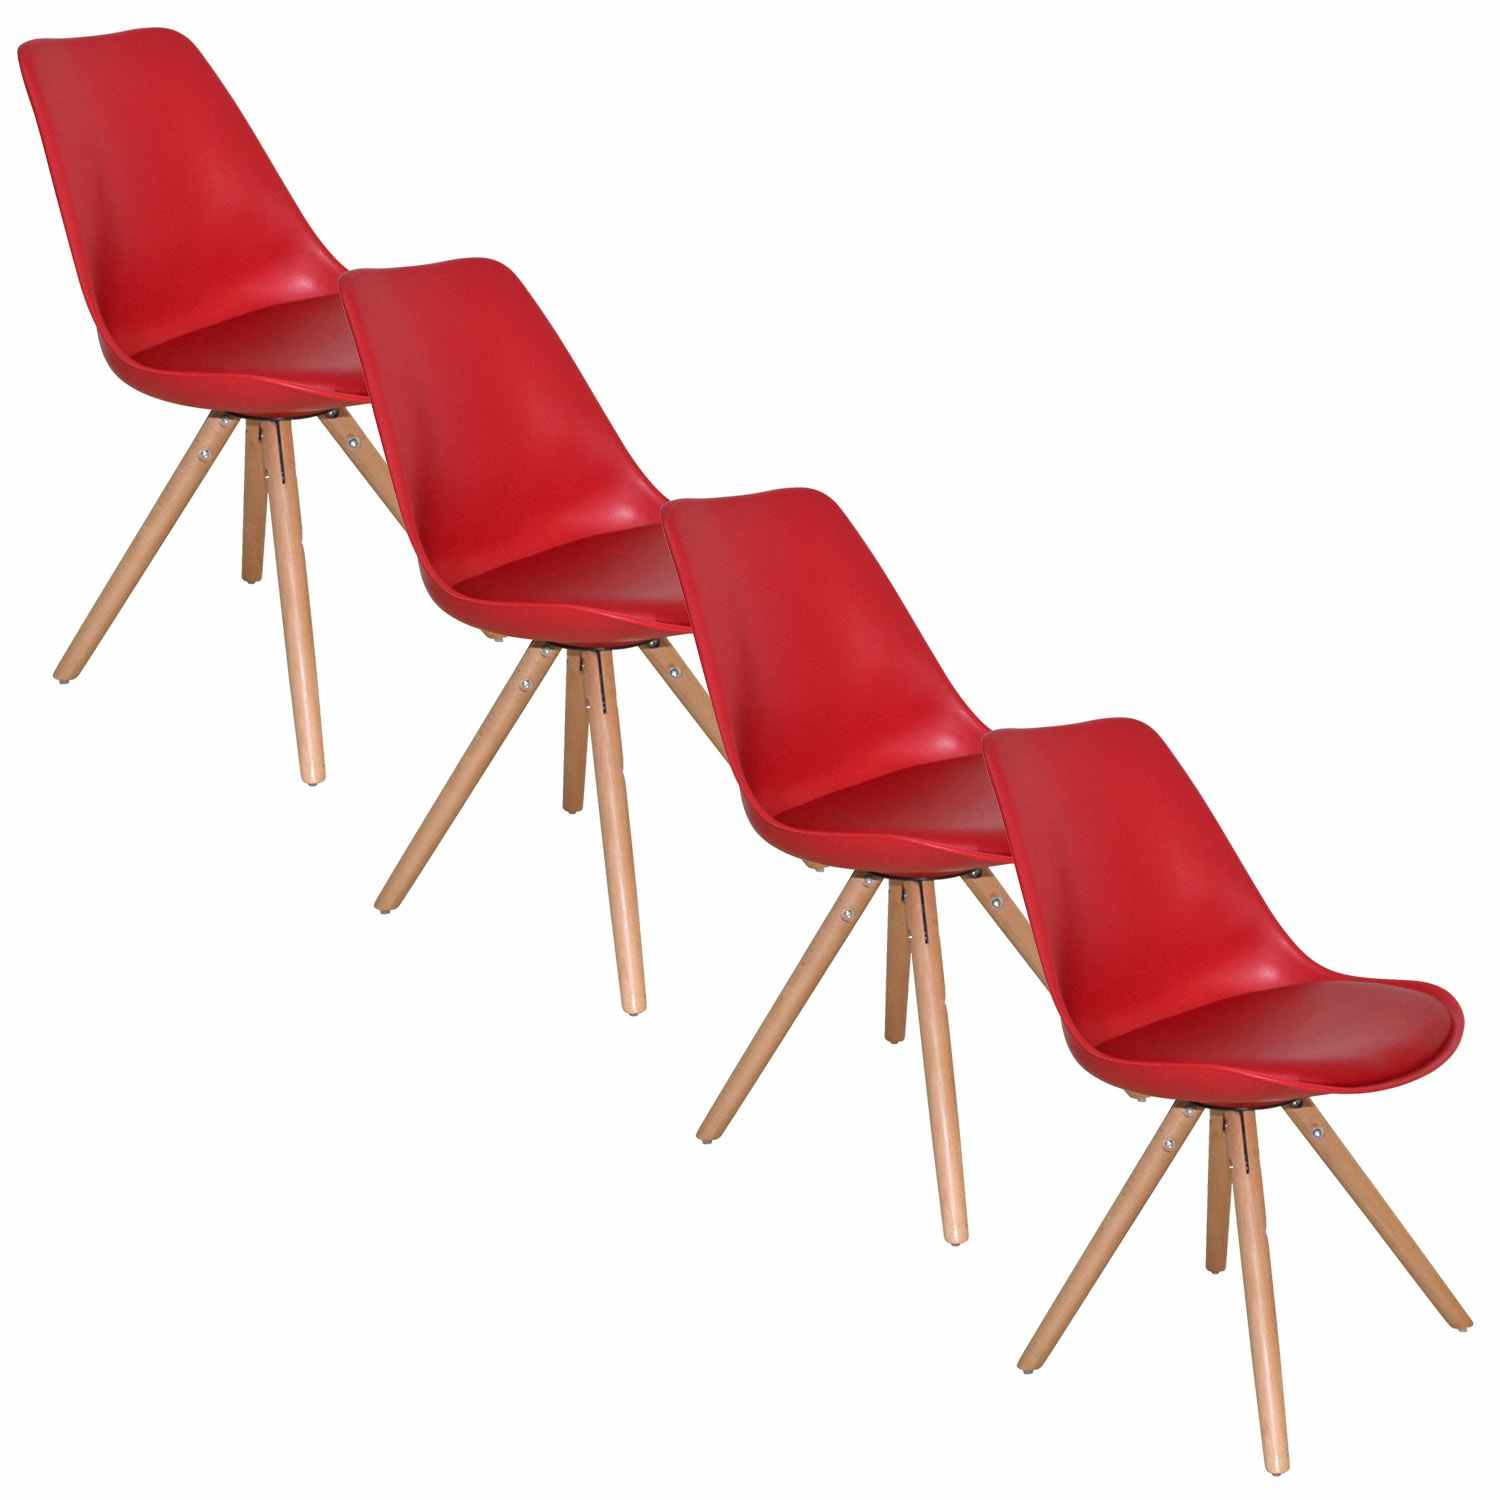 Deco in paris lot de 4 chaises design rouge velta velta for Lot 4 chaises